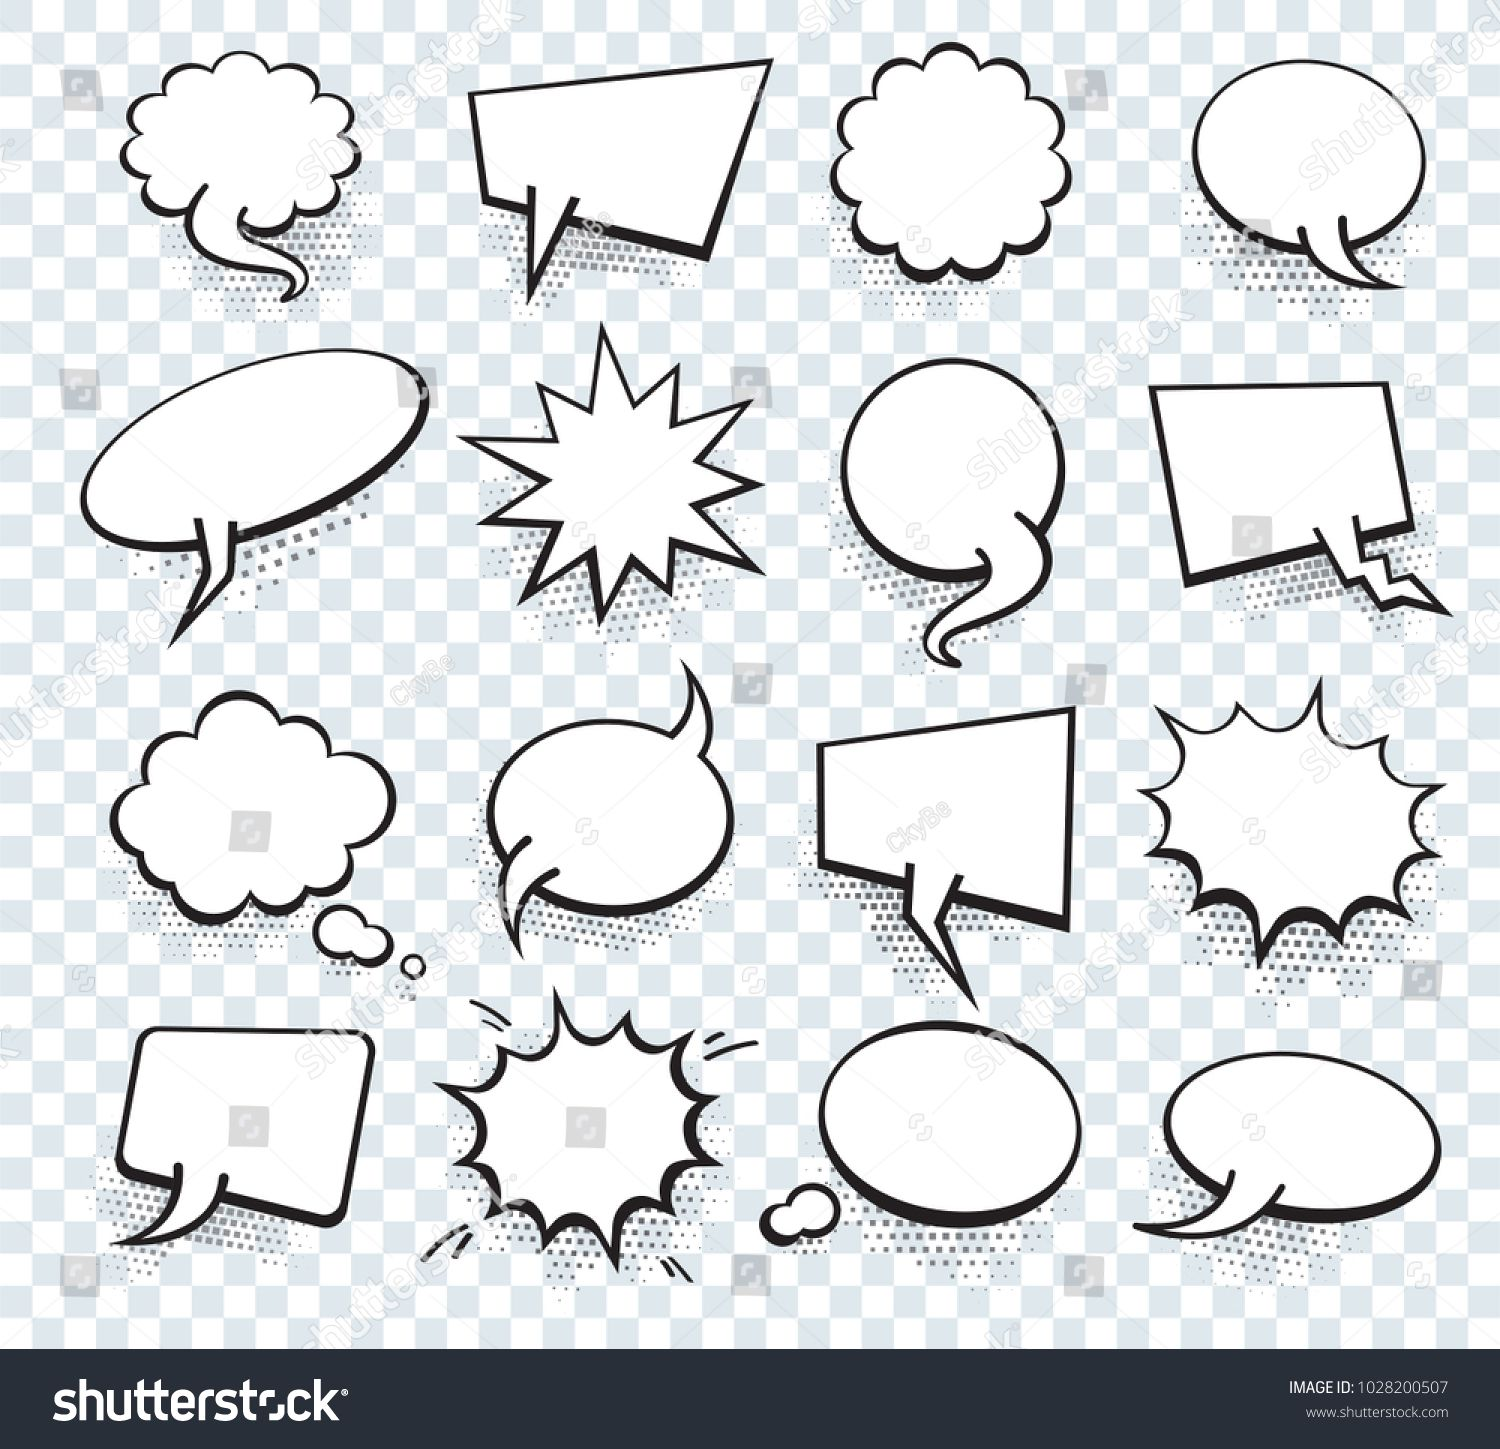 Set Of Blank Template In Pop Art Style Vector Comic Text Speech Bubble Halftone Dot Background Empty Cloud Of Com Hand Lettering Art Comic Text Pop Art Style Speech bubble template with lines